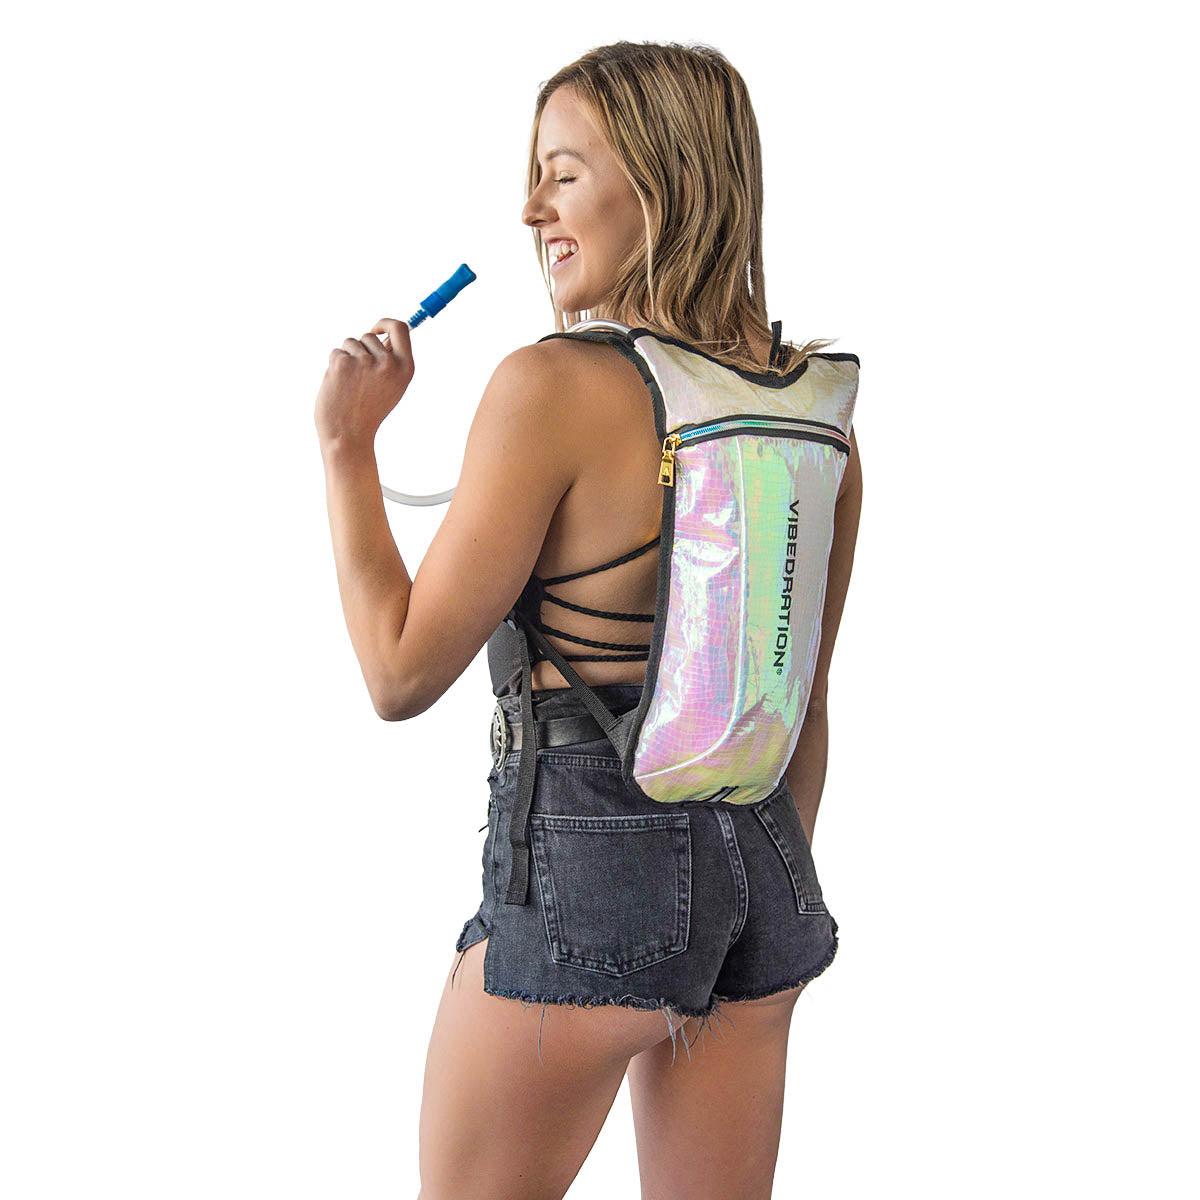 Shiny hydration pack for music festivals